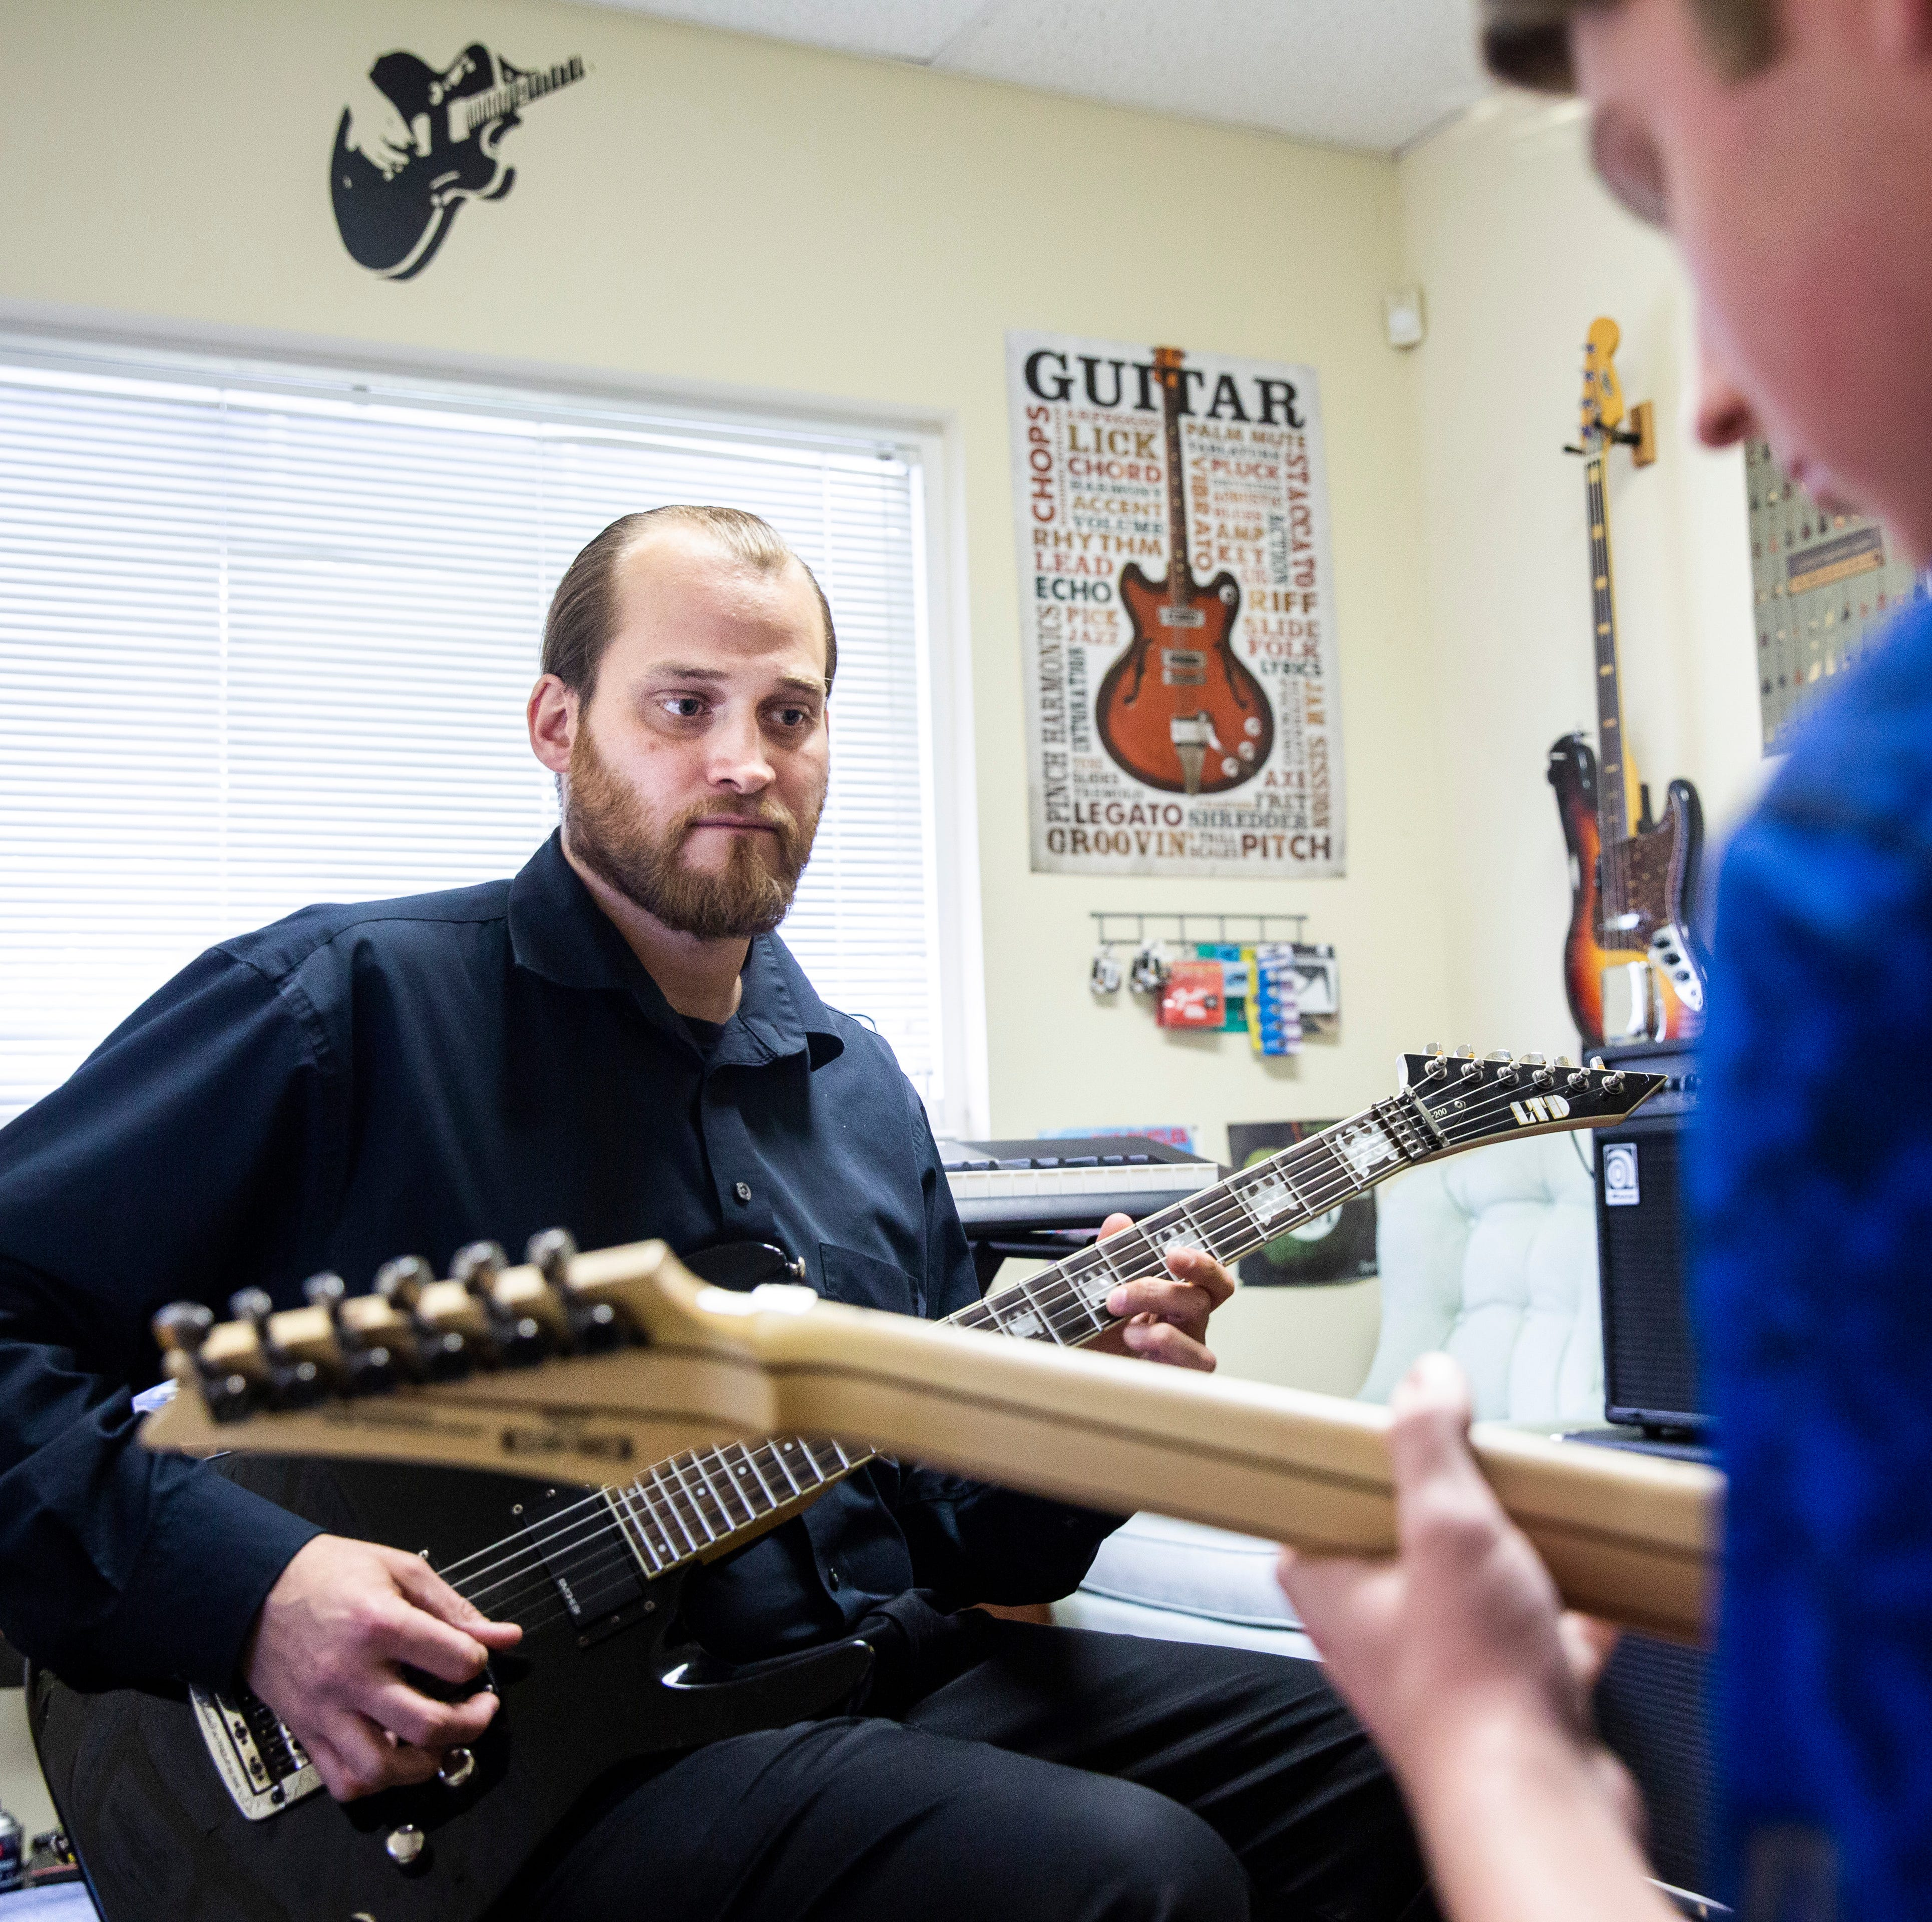 Want to learn guitar? Local instructor to answer questions on Facebook live